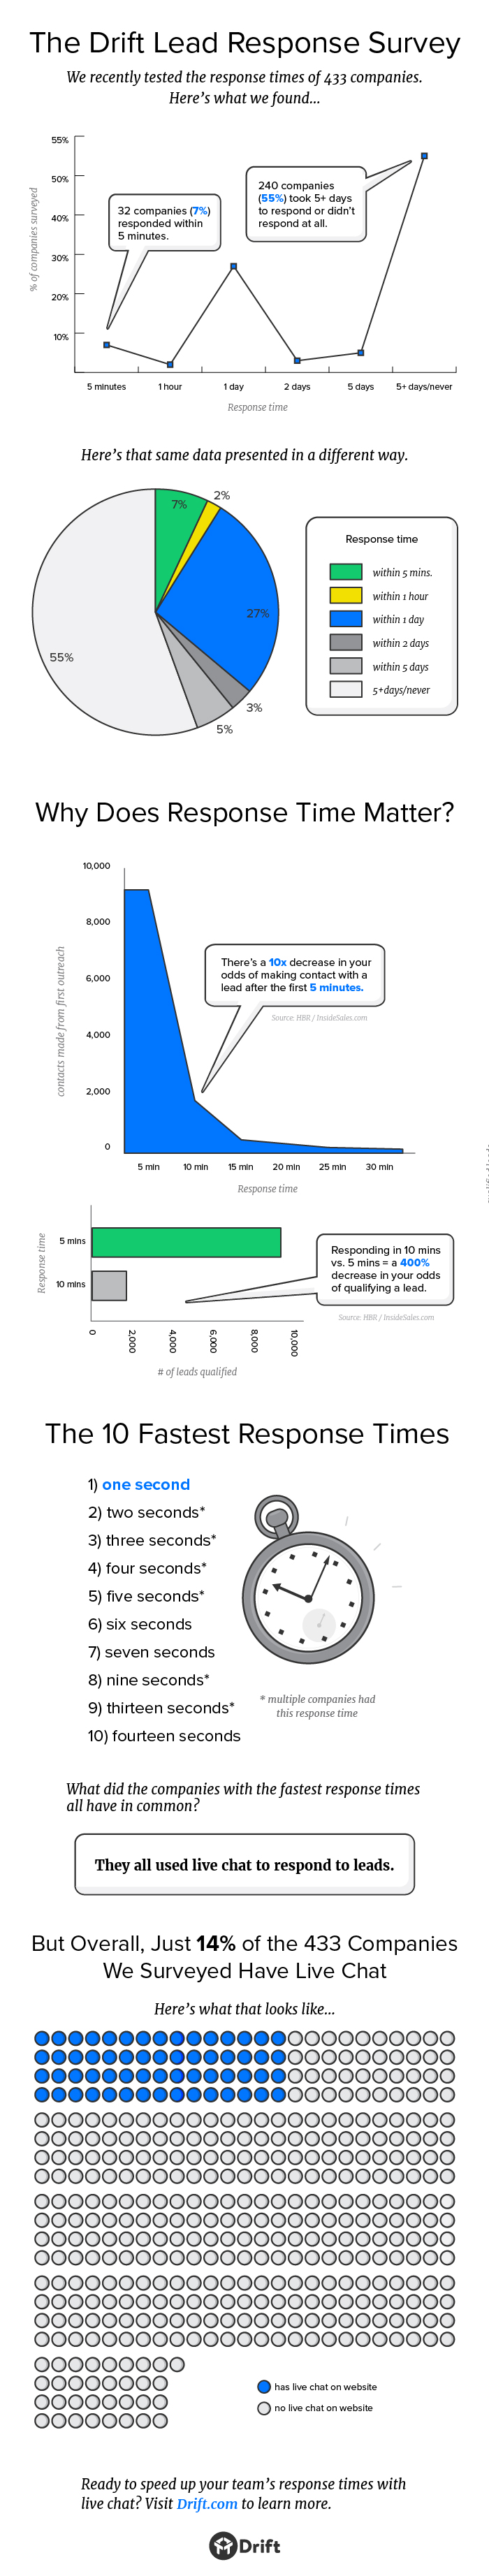 We Tested The Response Times Of 433 Sales Teams. Here Are The Results.